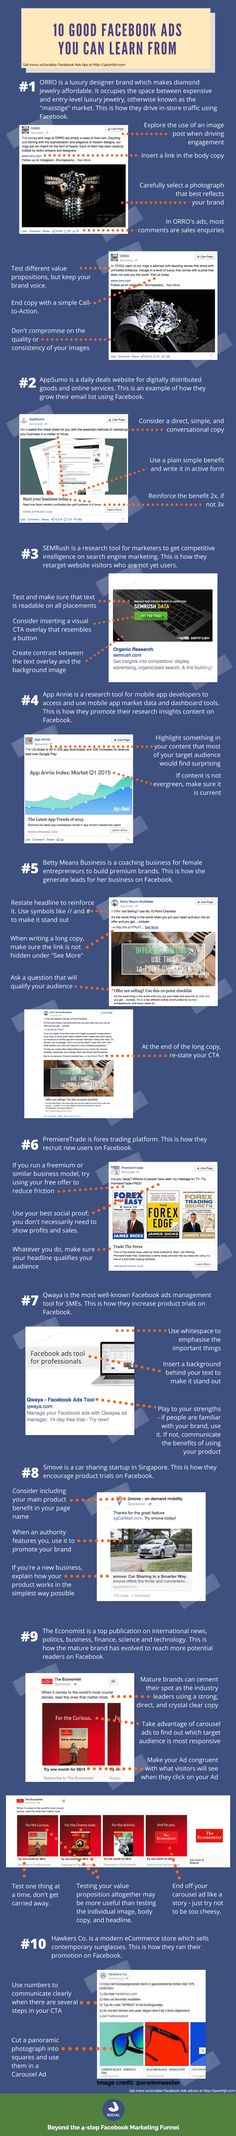 Greatest methods to use for running a successful Facebook ad campaign that increases your click through rate.